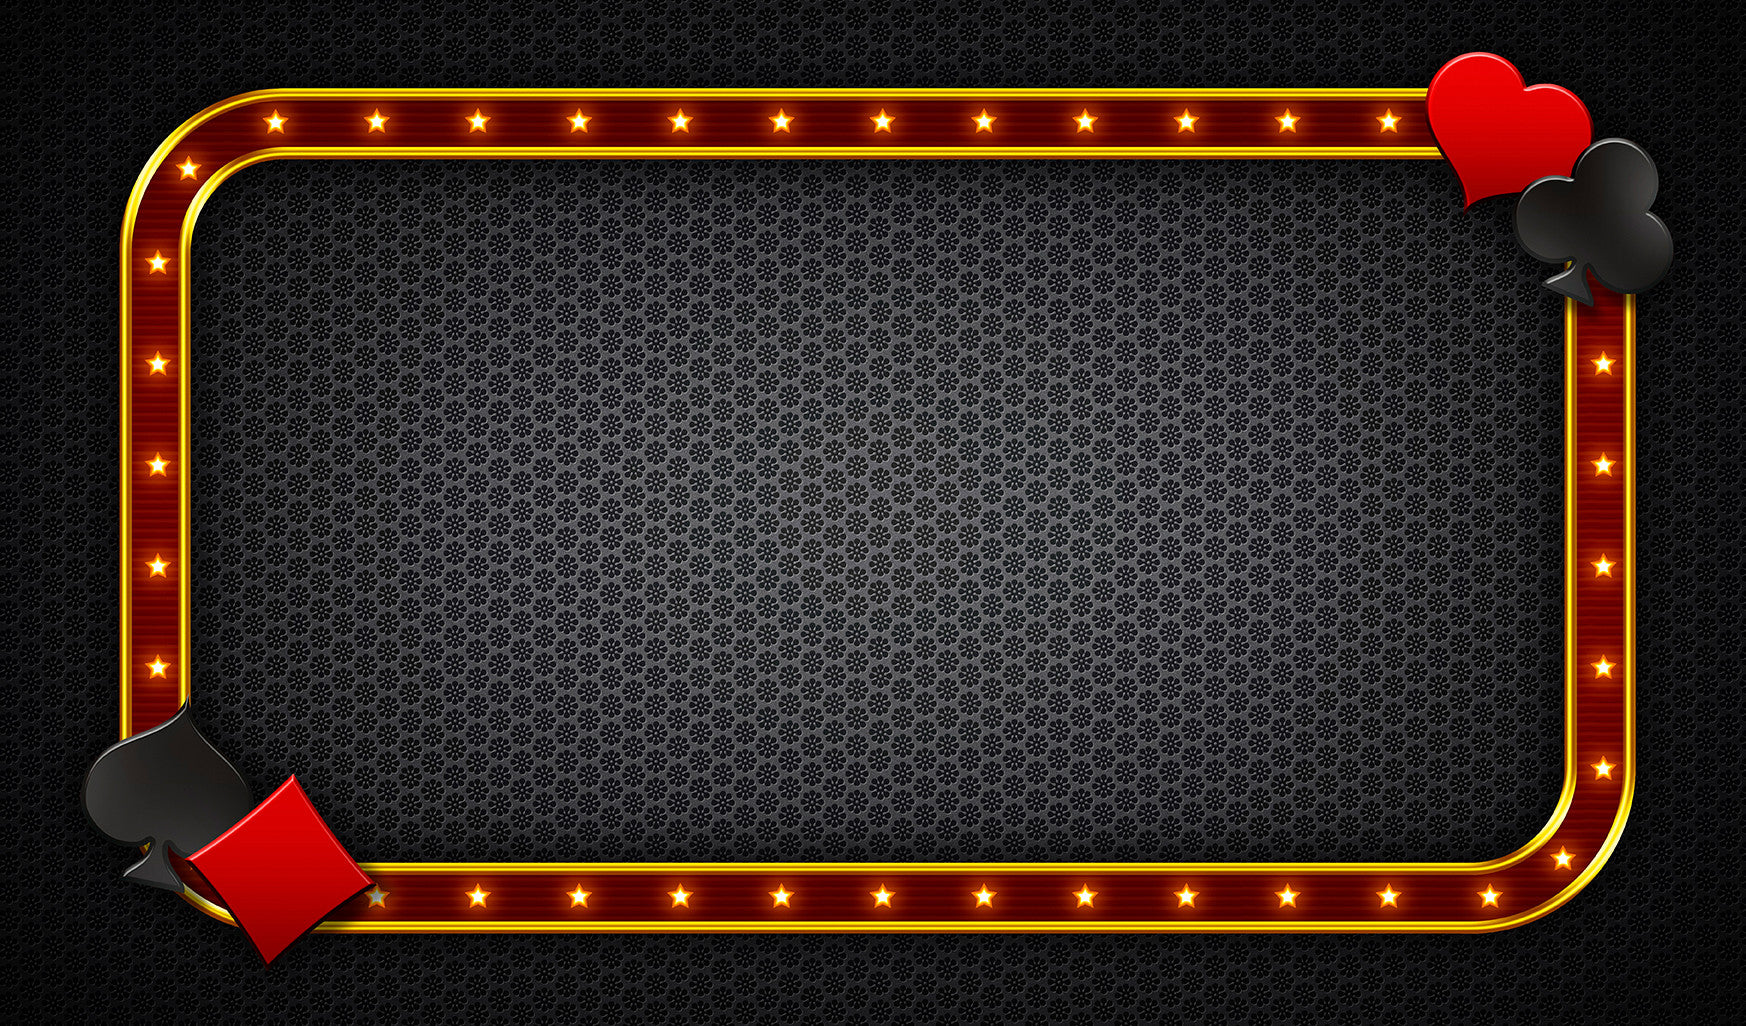 12X18 Deluxe Close Up Pad Casino Black